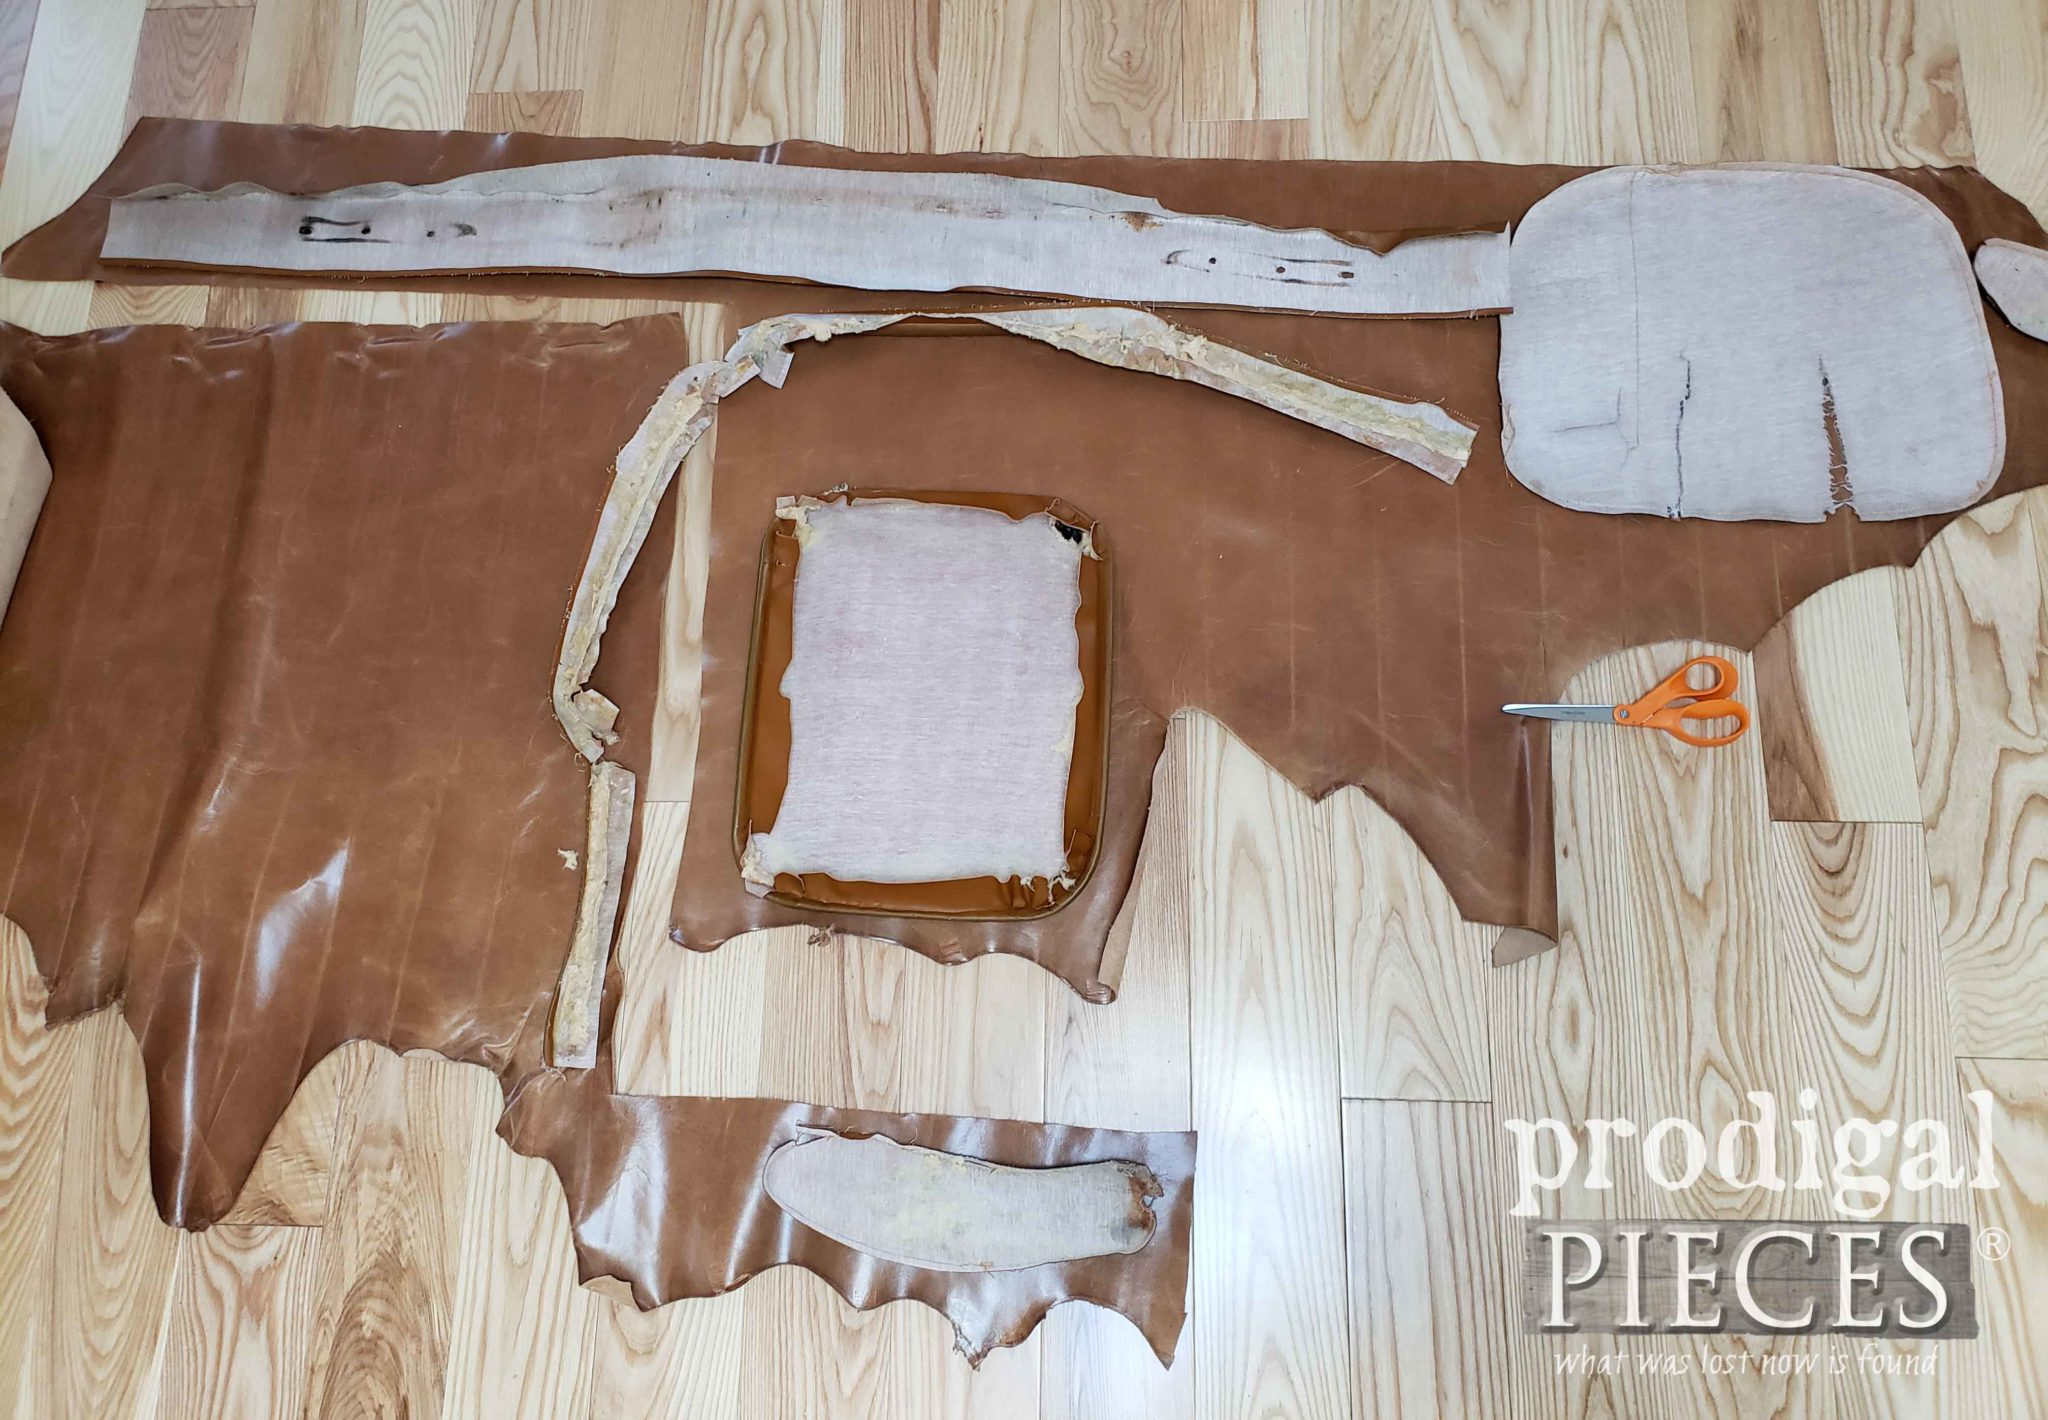 Leather Upholstery Layout | prodigalpieces.com